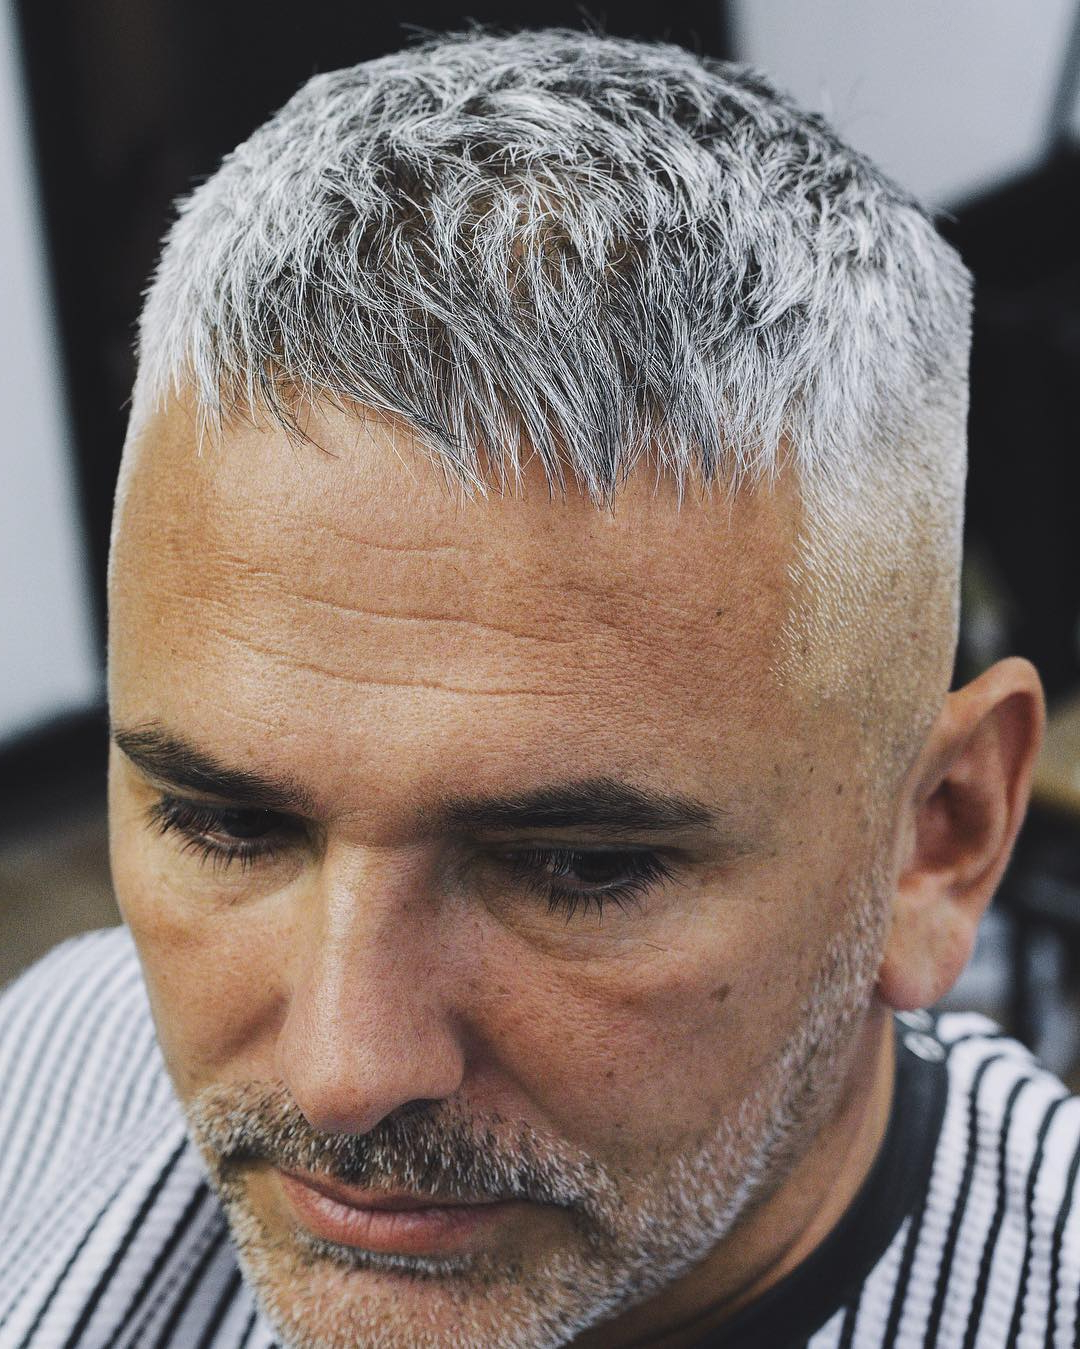 Hairstyles For Older Men | Men's Hairstyle Trends With Regard To Short Hairstyles For Salt And Pepper Hair (View 23 of 25)